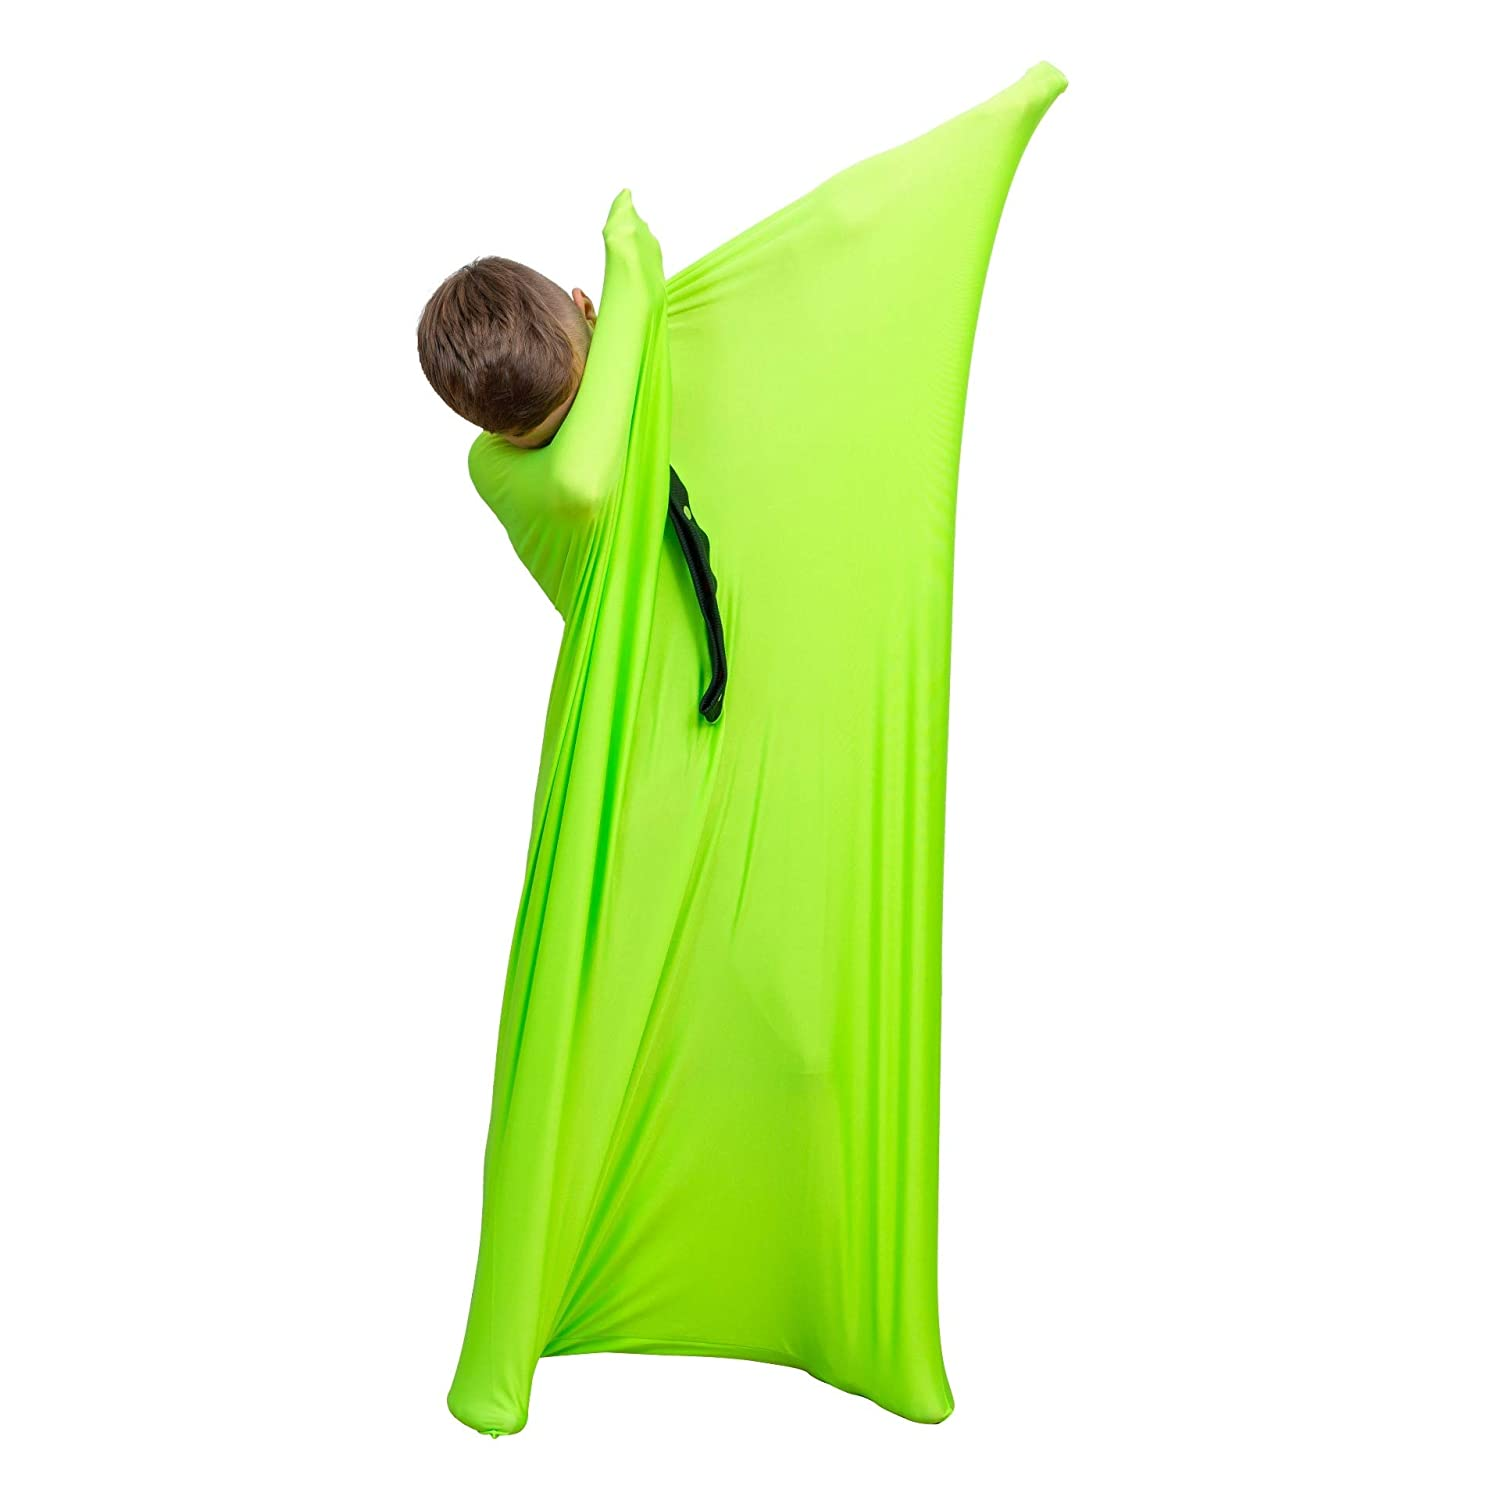 Anxiety Full-Body Wrap Sensory Stretchy Body Sock for Individuals with Autism Deep Pressure Simulation Body Blanket Snap Closure Large 56x27, Blue